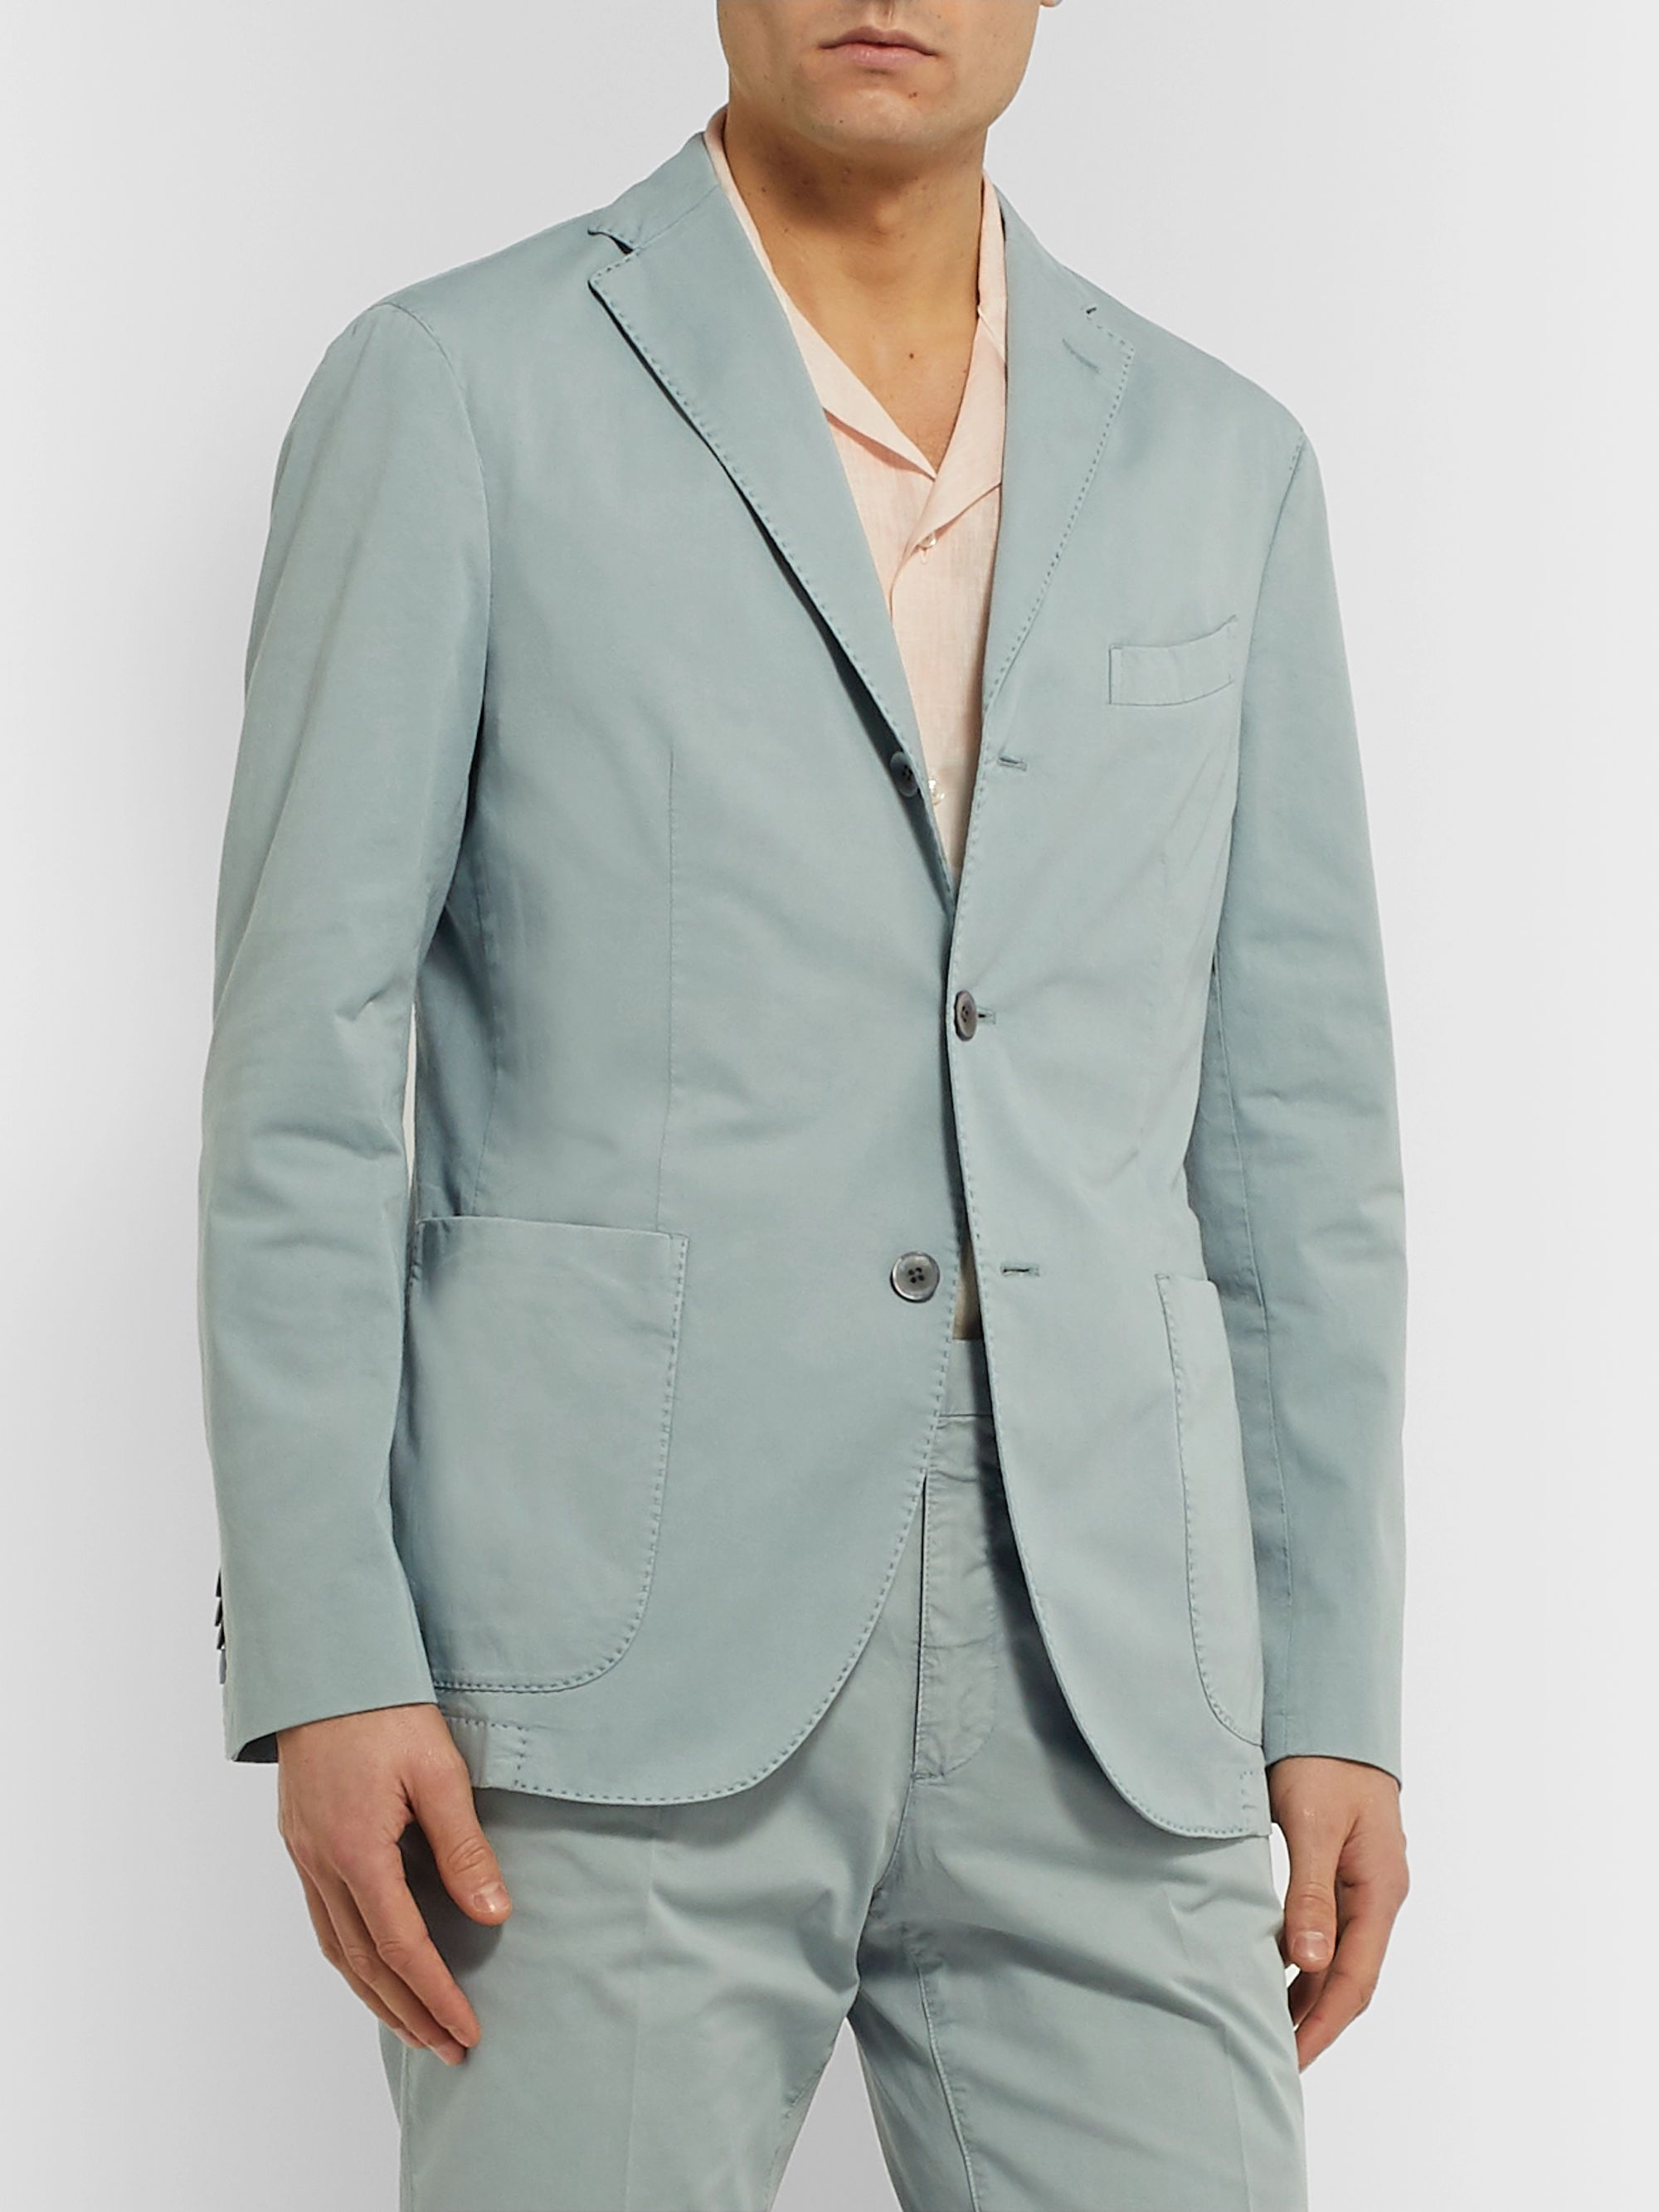 Boglioli Grey-Green Slim-Fit Stretch-Cotton Twill Suit Jacket